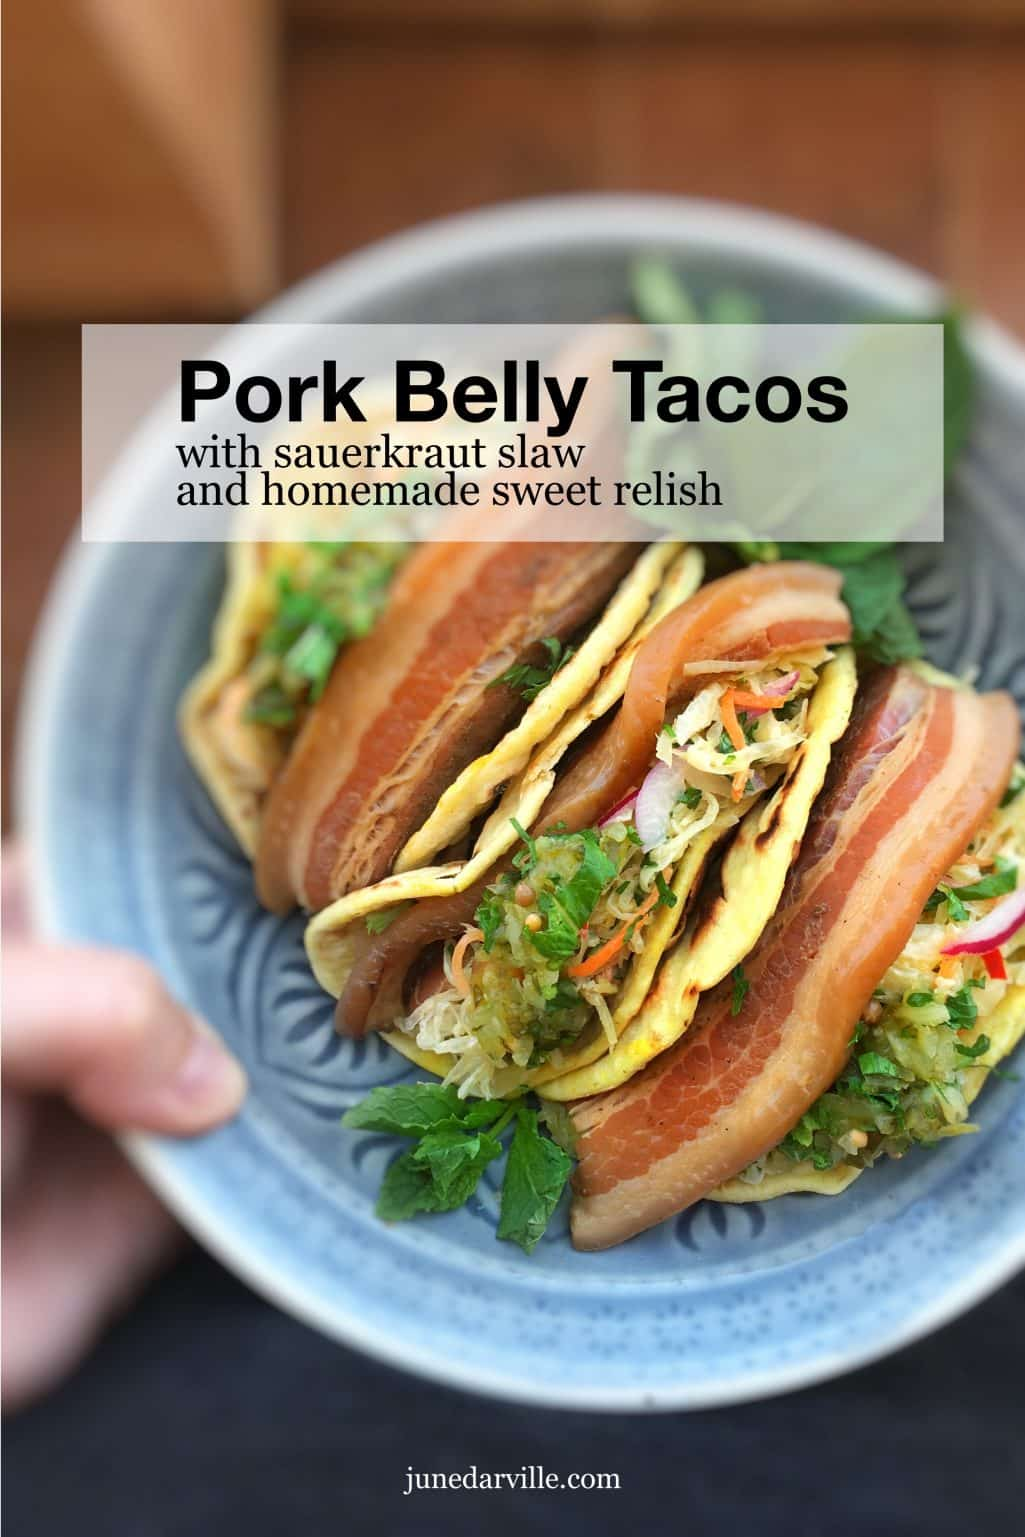 Beer and soy sauce braised pork belly tacos with a refreshing sauerkraut salad and a dollop of homemade sweet relish... To die for!